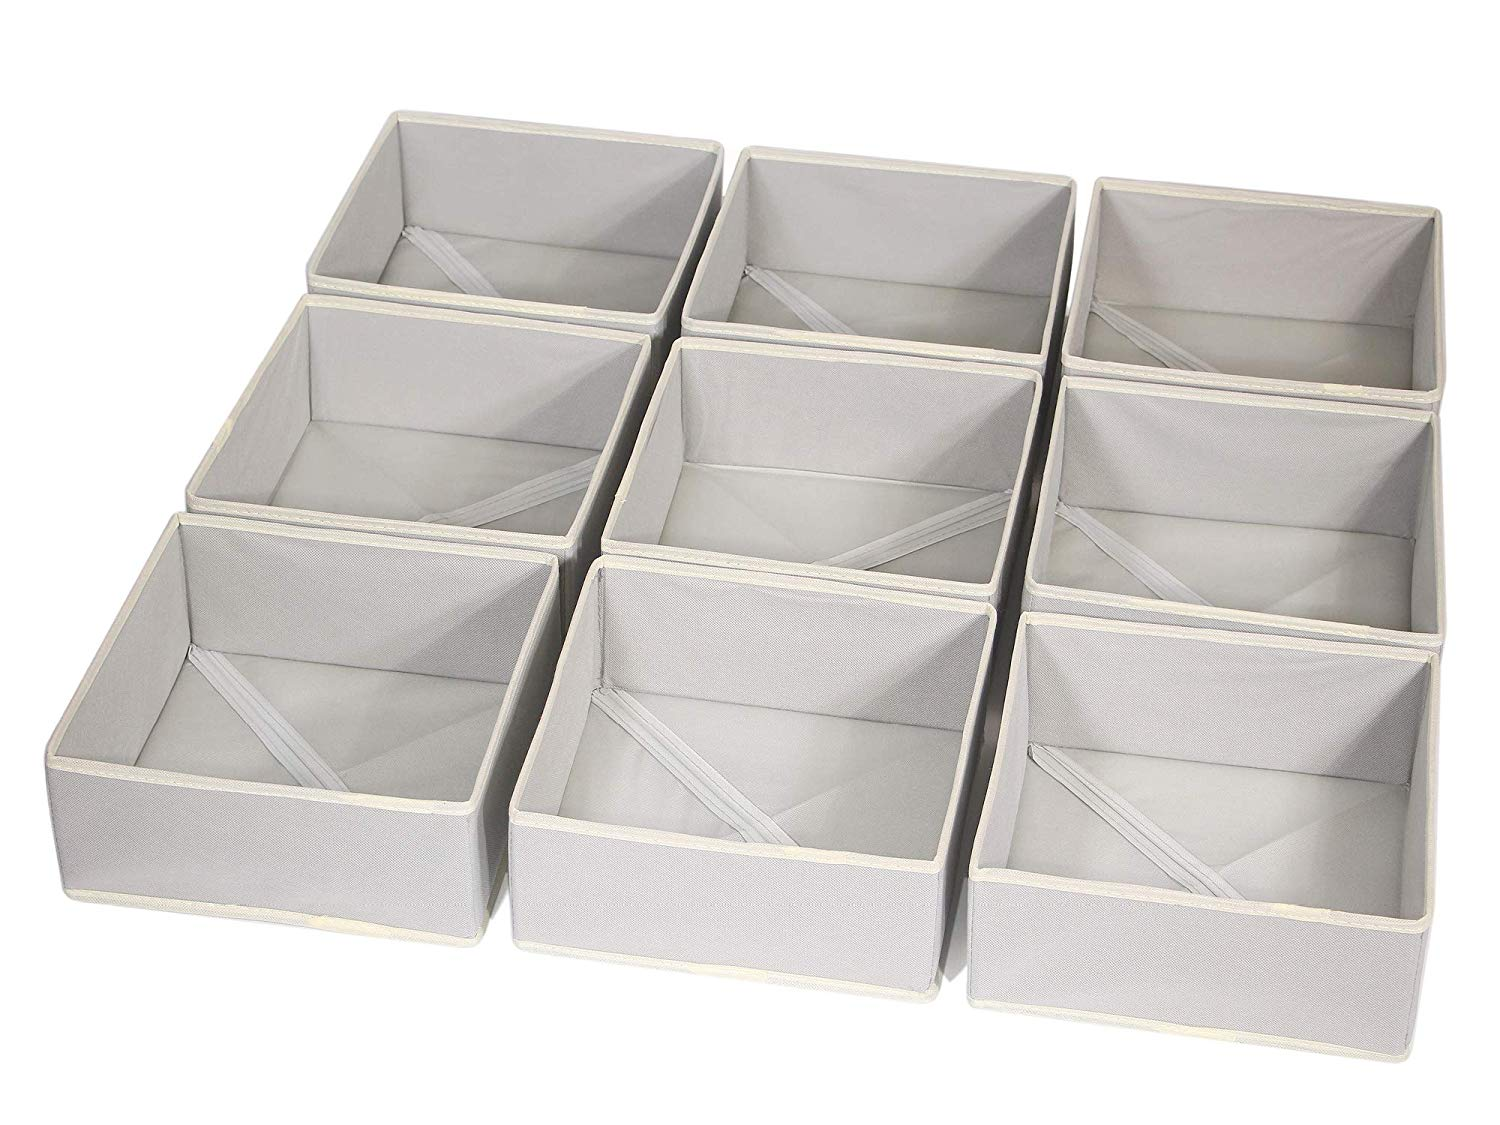 Natural Linen 9-Compartment Organizer